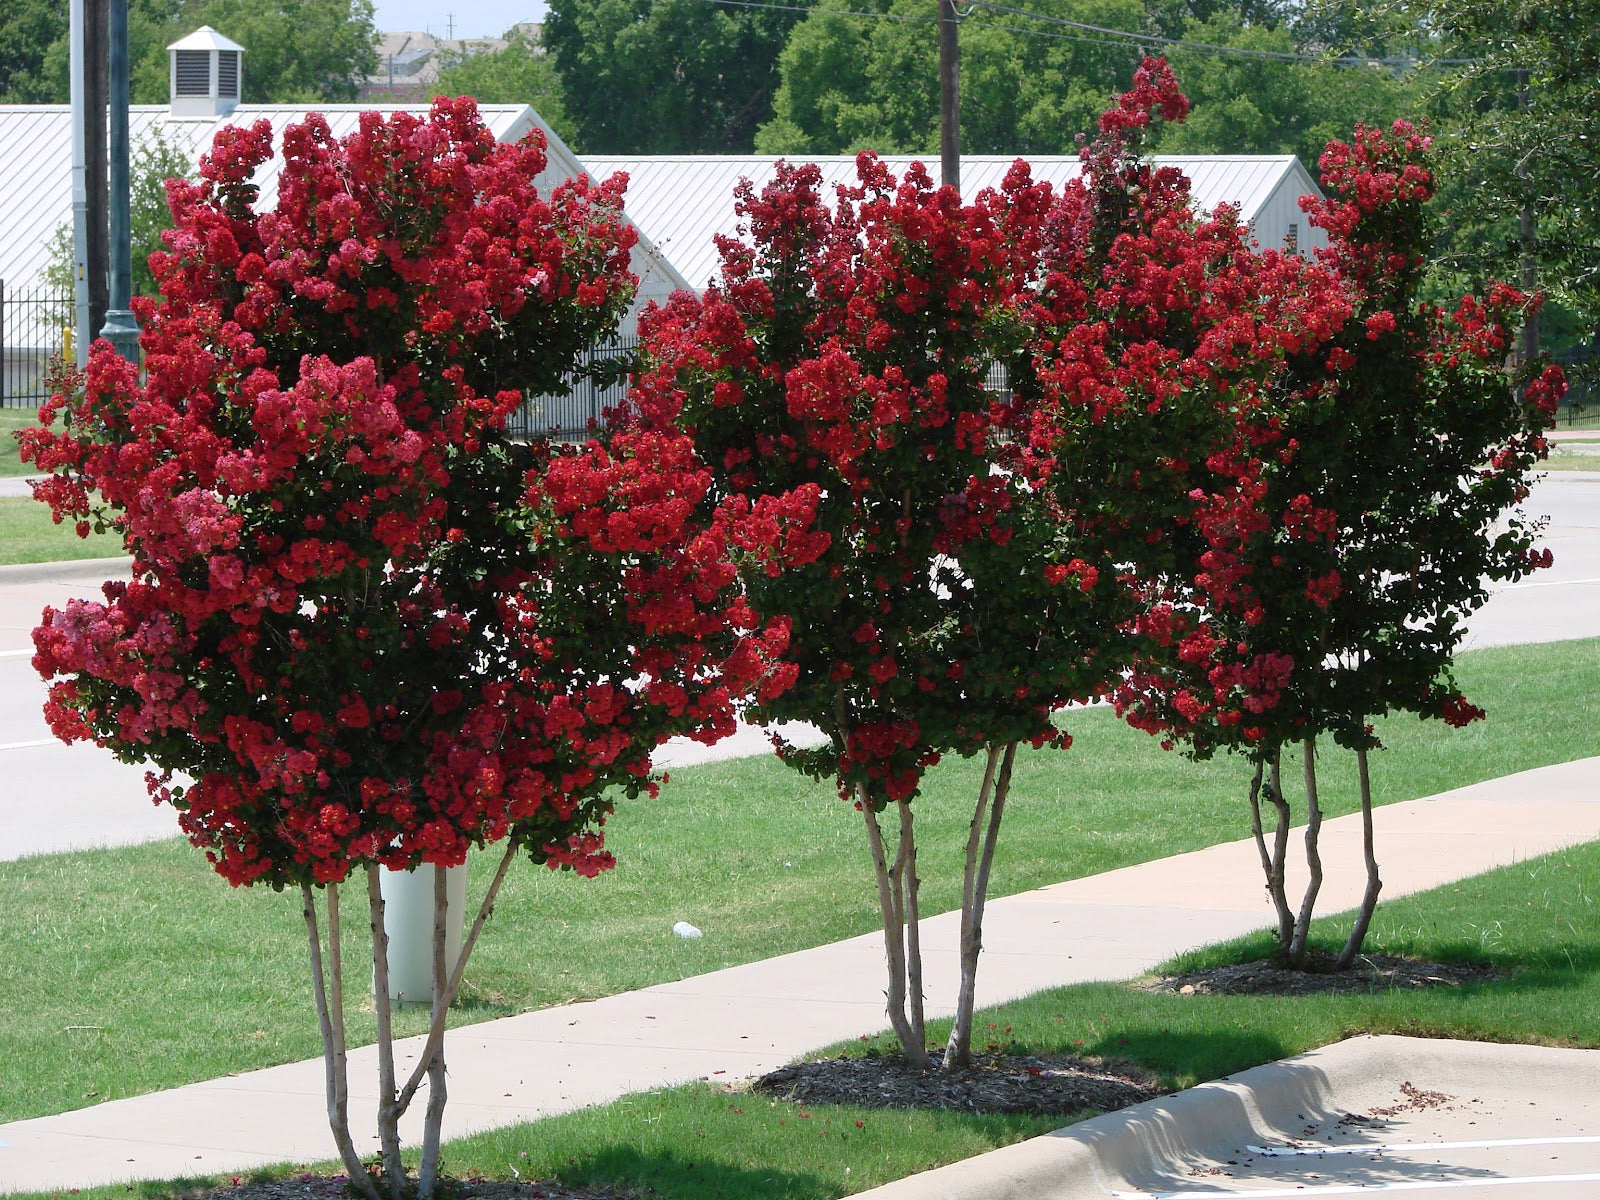 red crape myrtle trees